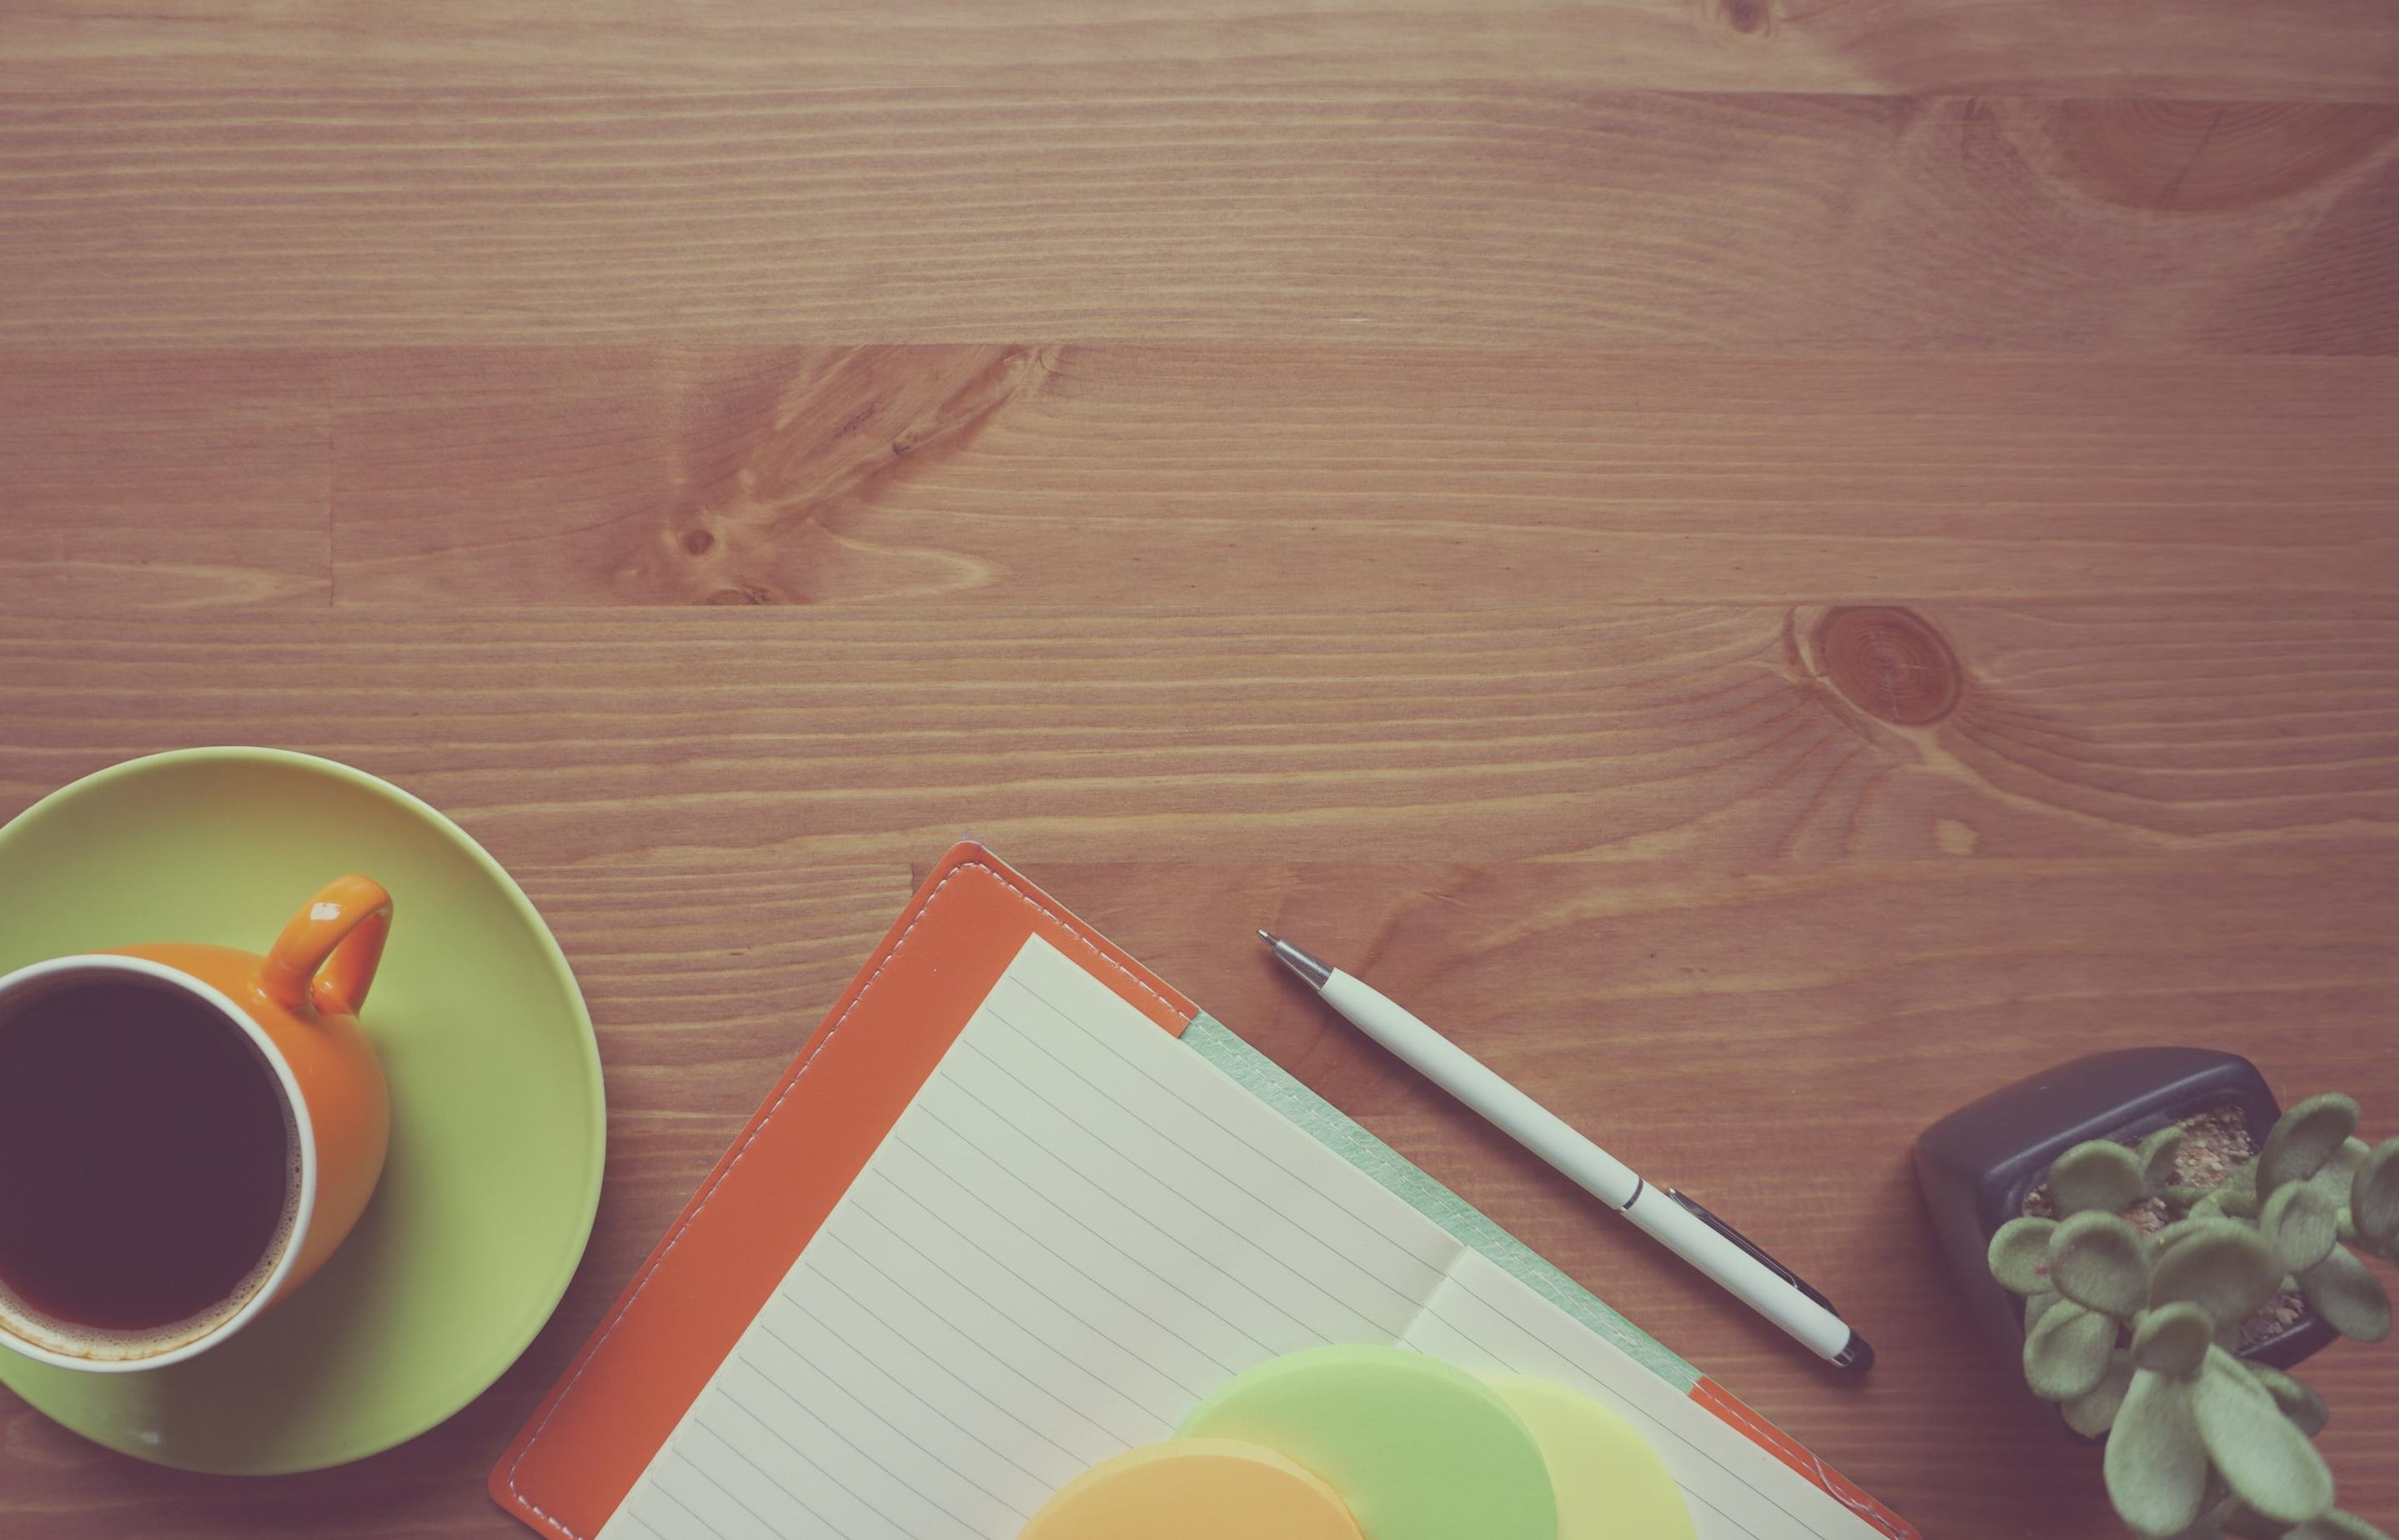 A cup of coffee beside a notebook, pen and bonsai tree